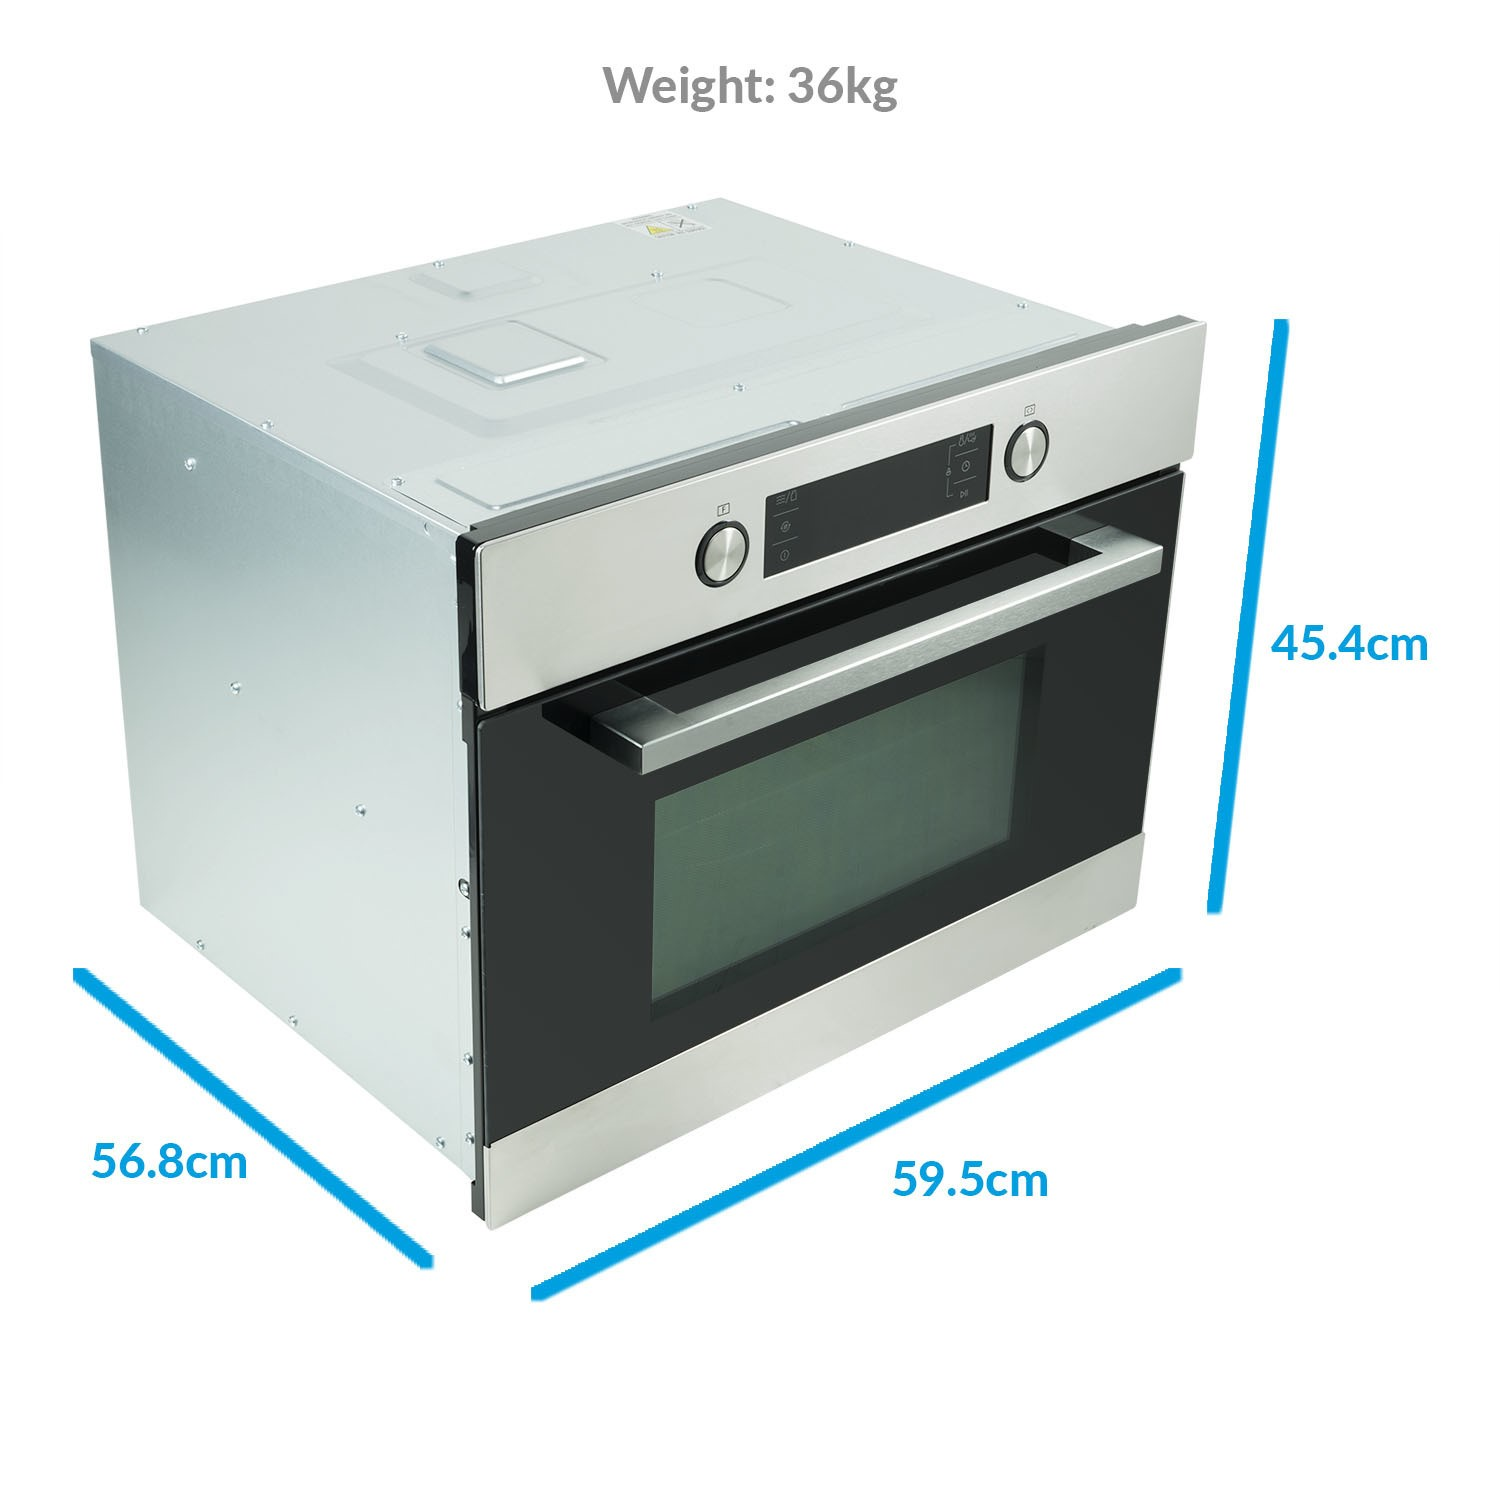 Built In Combi Microwave Oven And Grill: ElectriQ 44L Built-In Combination Microwave Oven And Grill